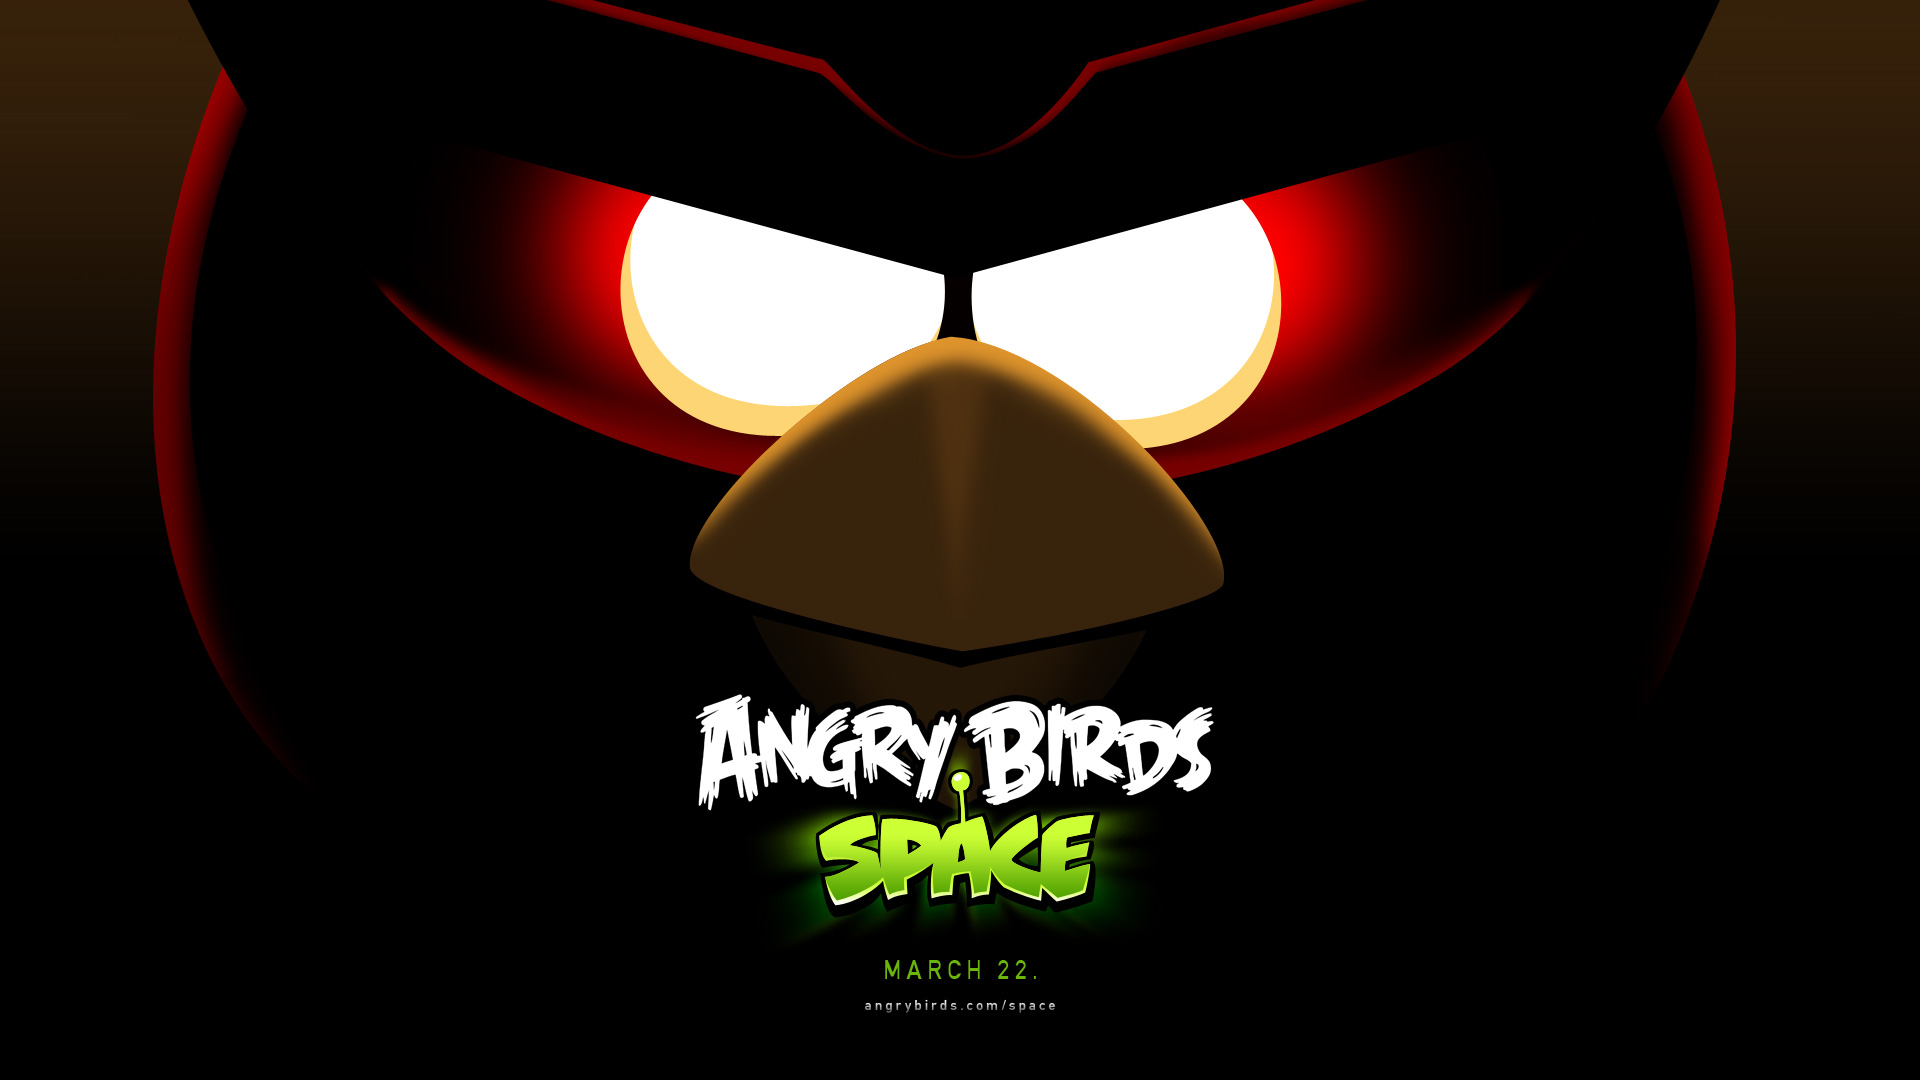 image space wallpaper teaser1 angry birds wiki